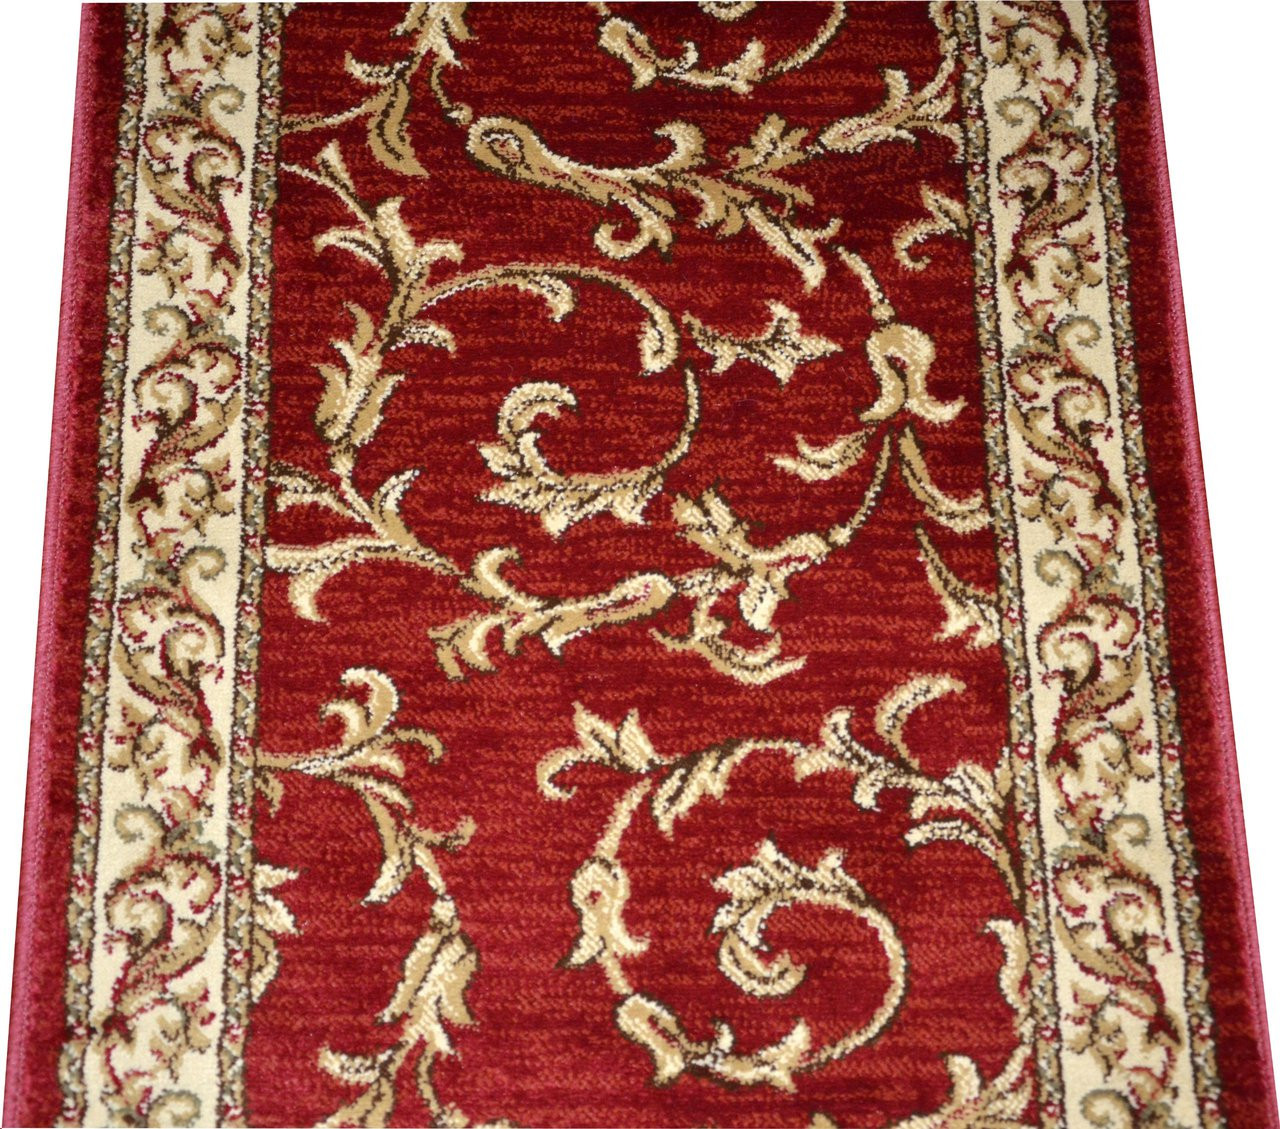 Dean Red Scrollworks Carpet Rug Hallway Stair Runner Purchase By